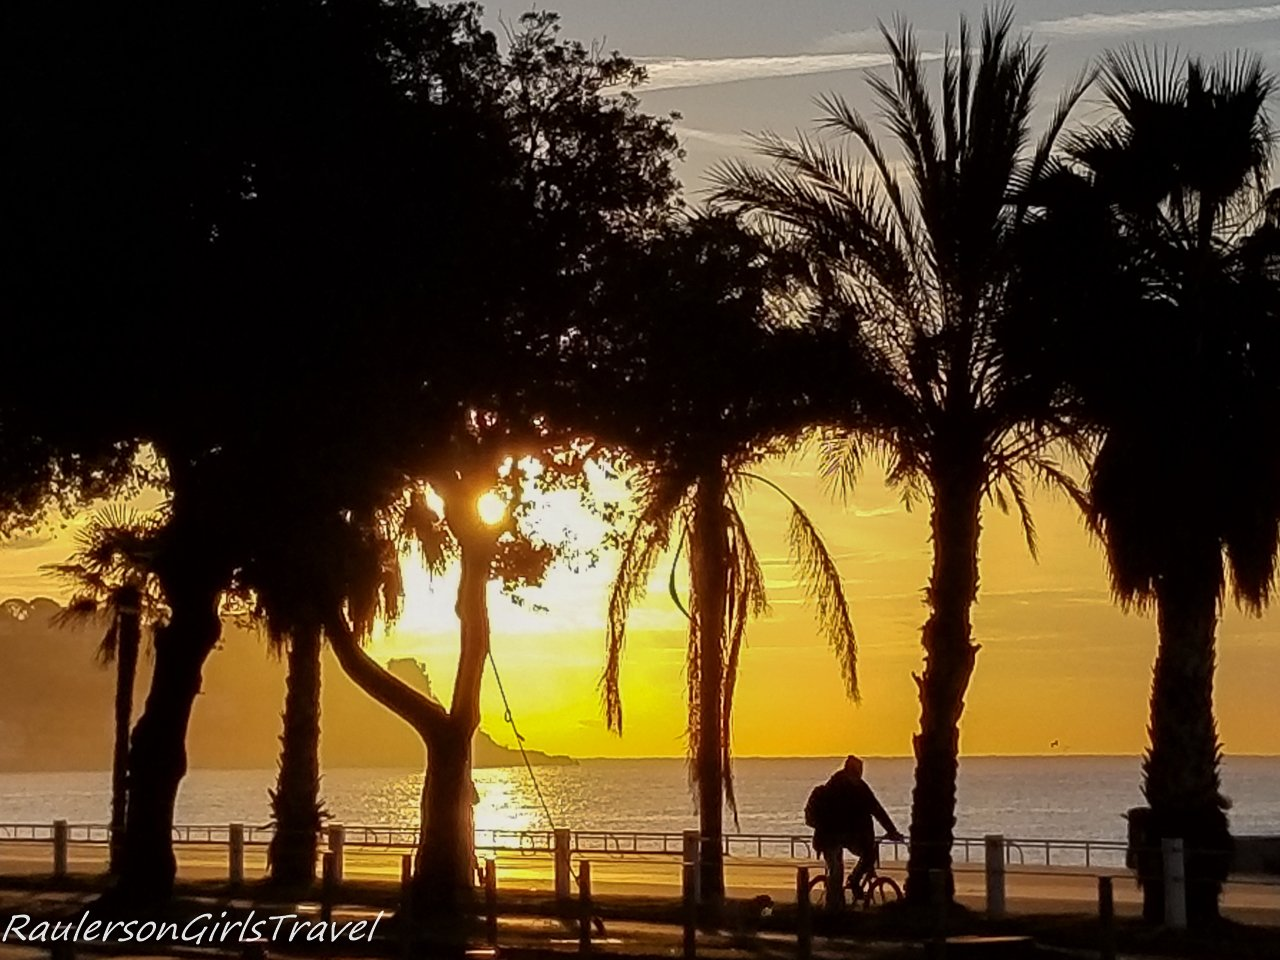 Sunrise with a biker silhouette in Nice